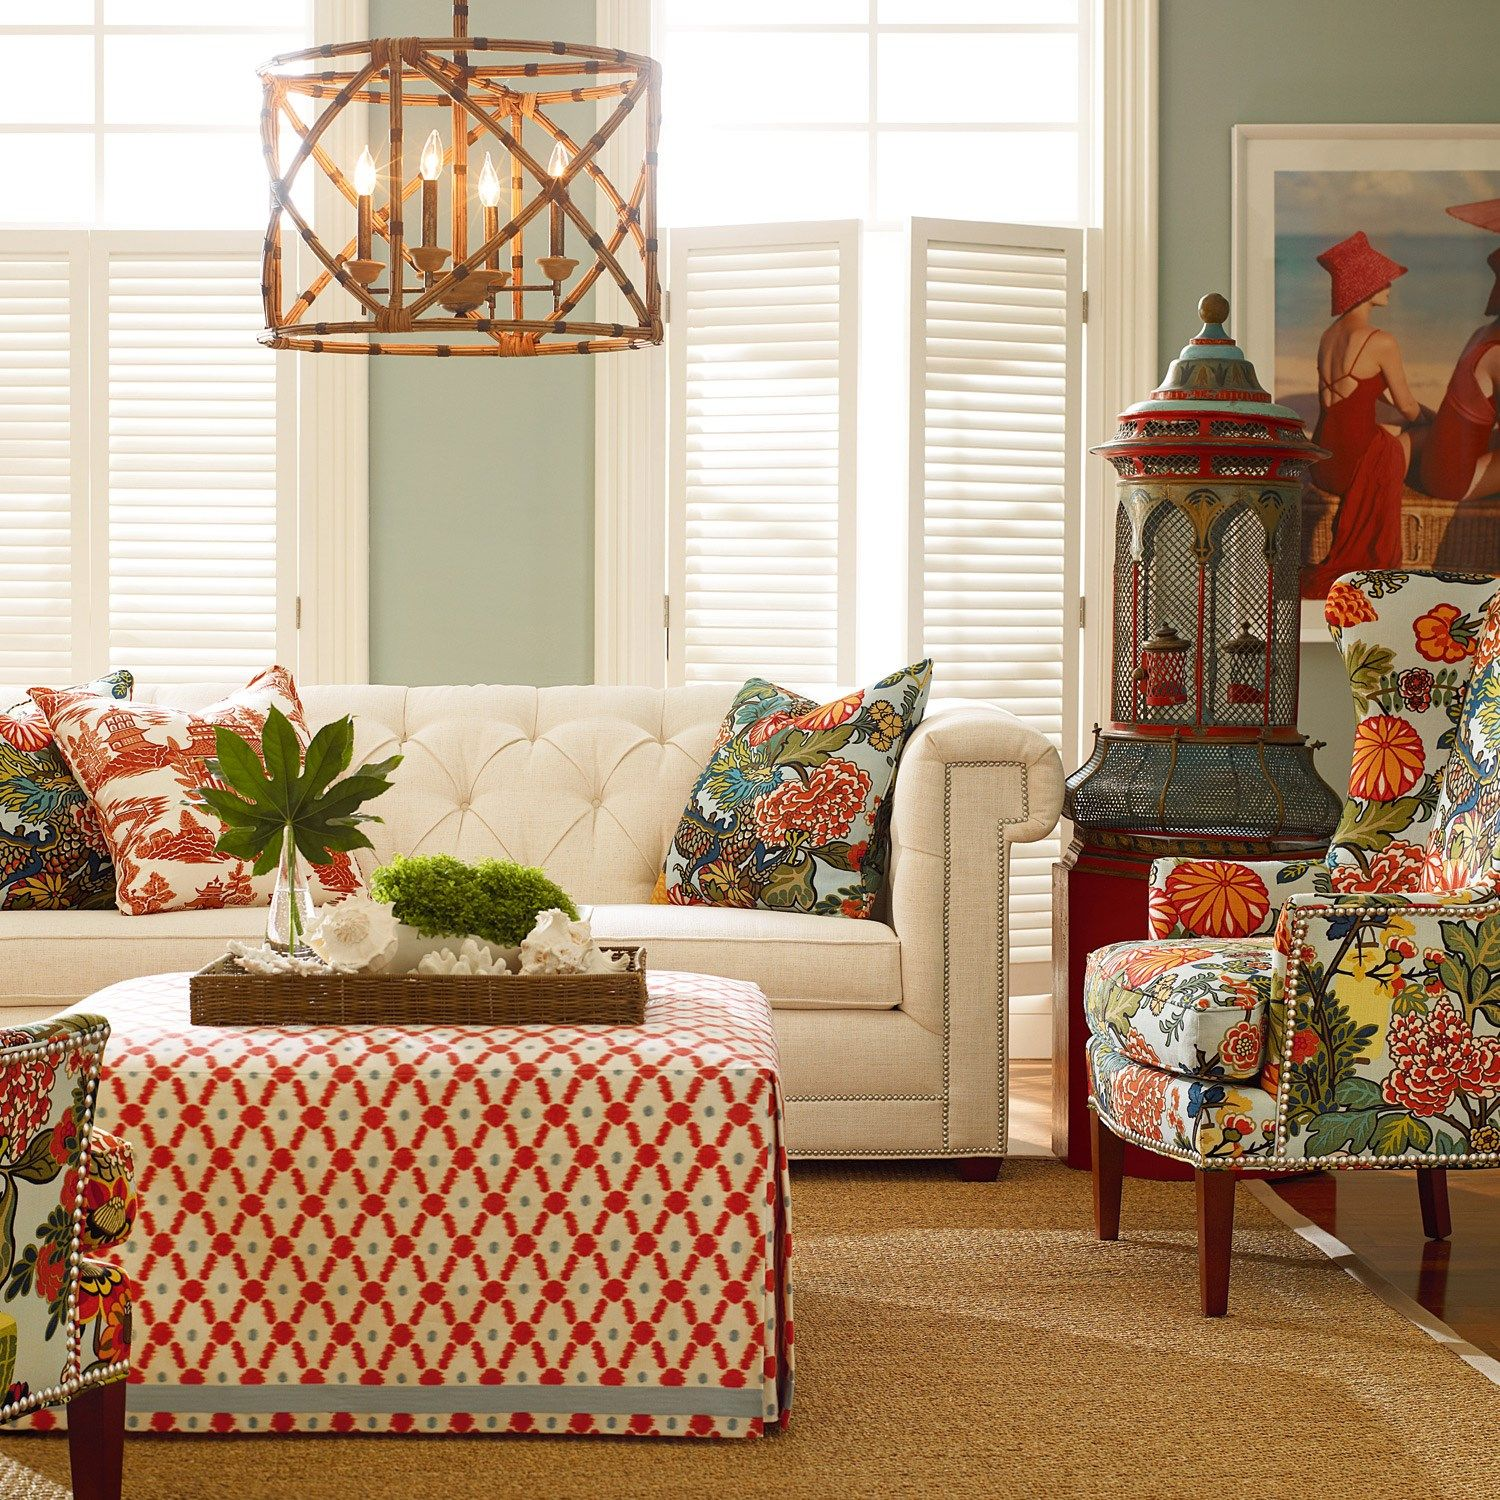 Sofa Colour Combination Sectional Sofas Kijiji Calgary Chinoiserie Love This Color Combo For The Home